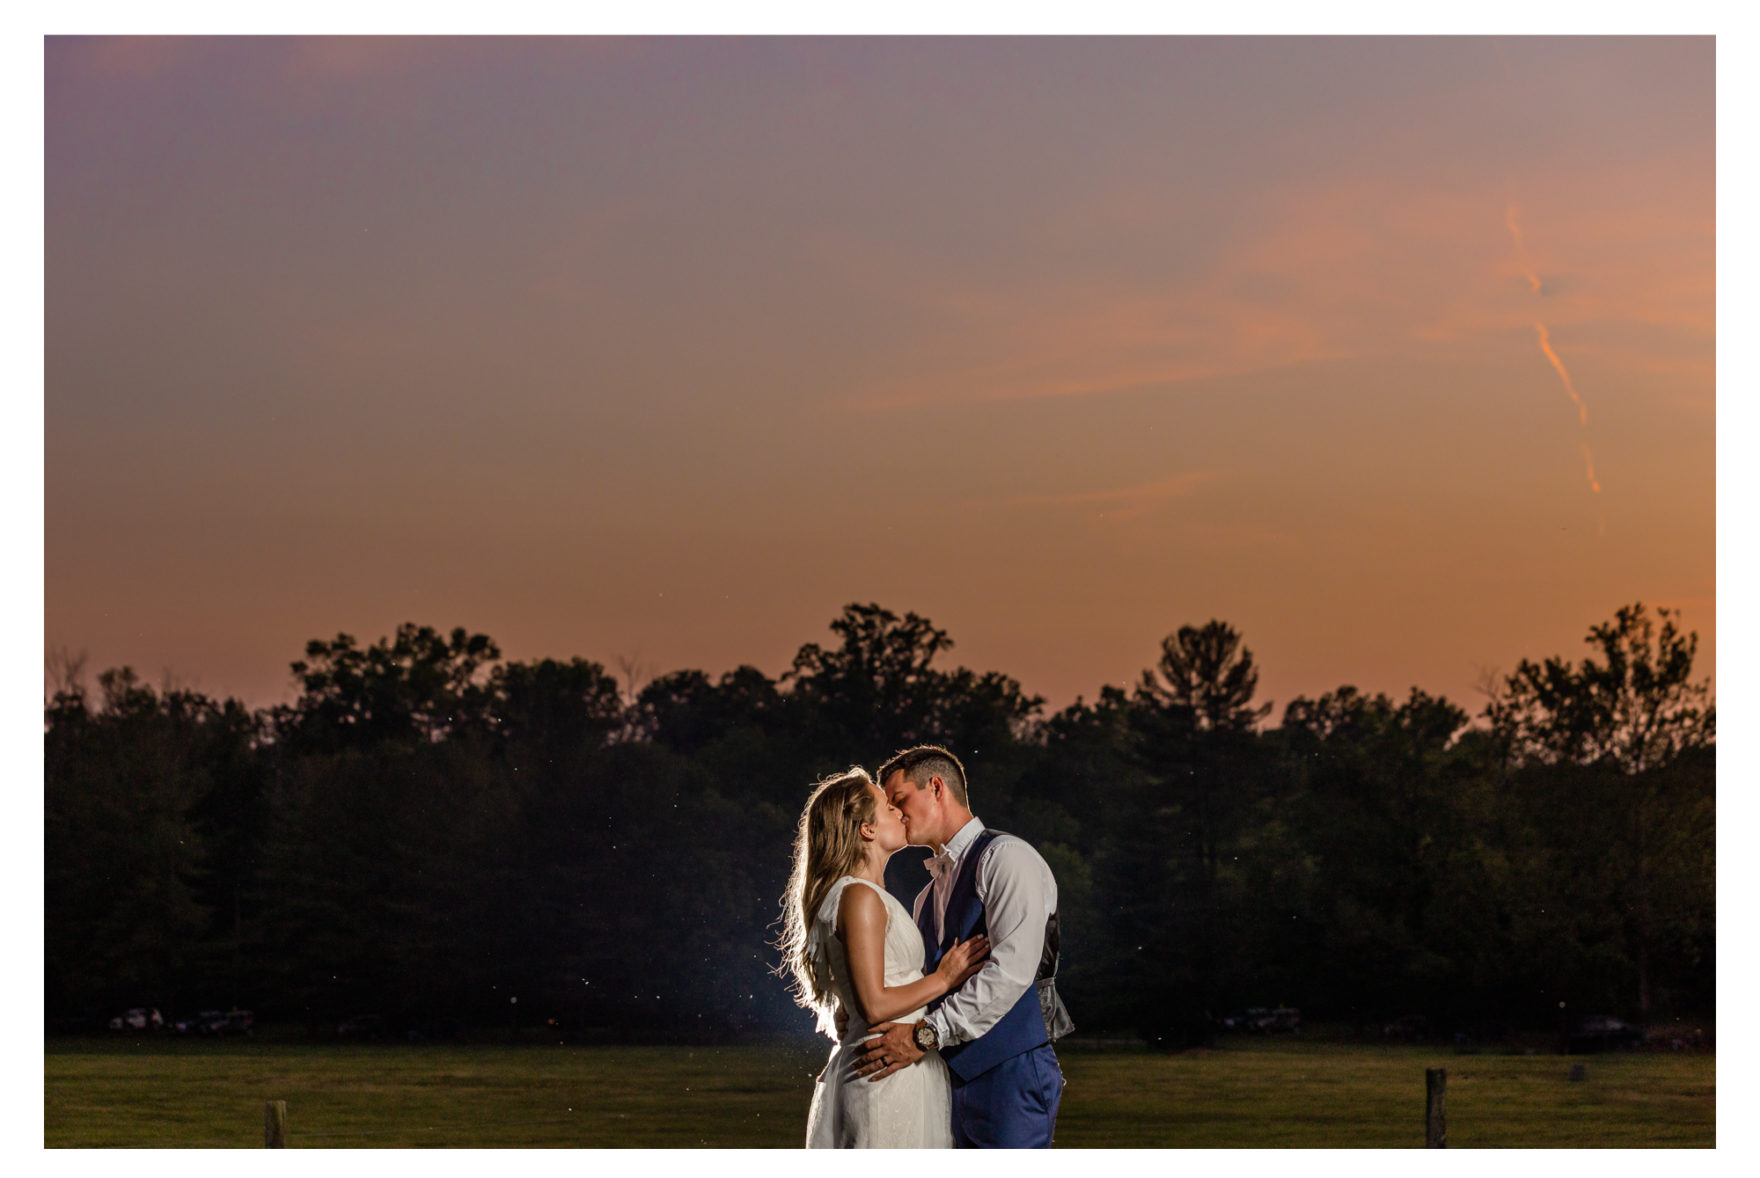 Summer wedding at a private residence farm in Westminster Carroll County Maryland. Cicadas, cows and dogs at the wedding. Pond view Sunset photo